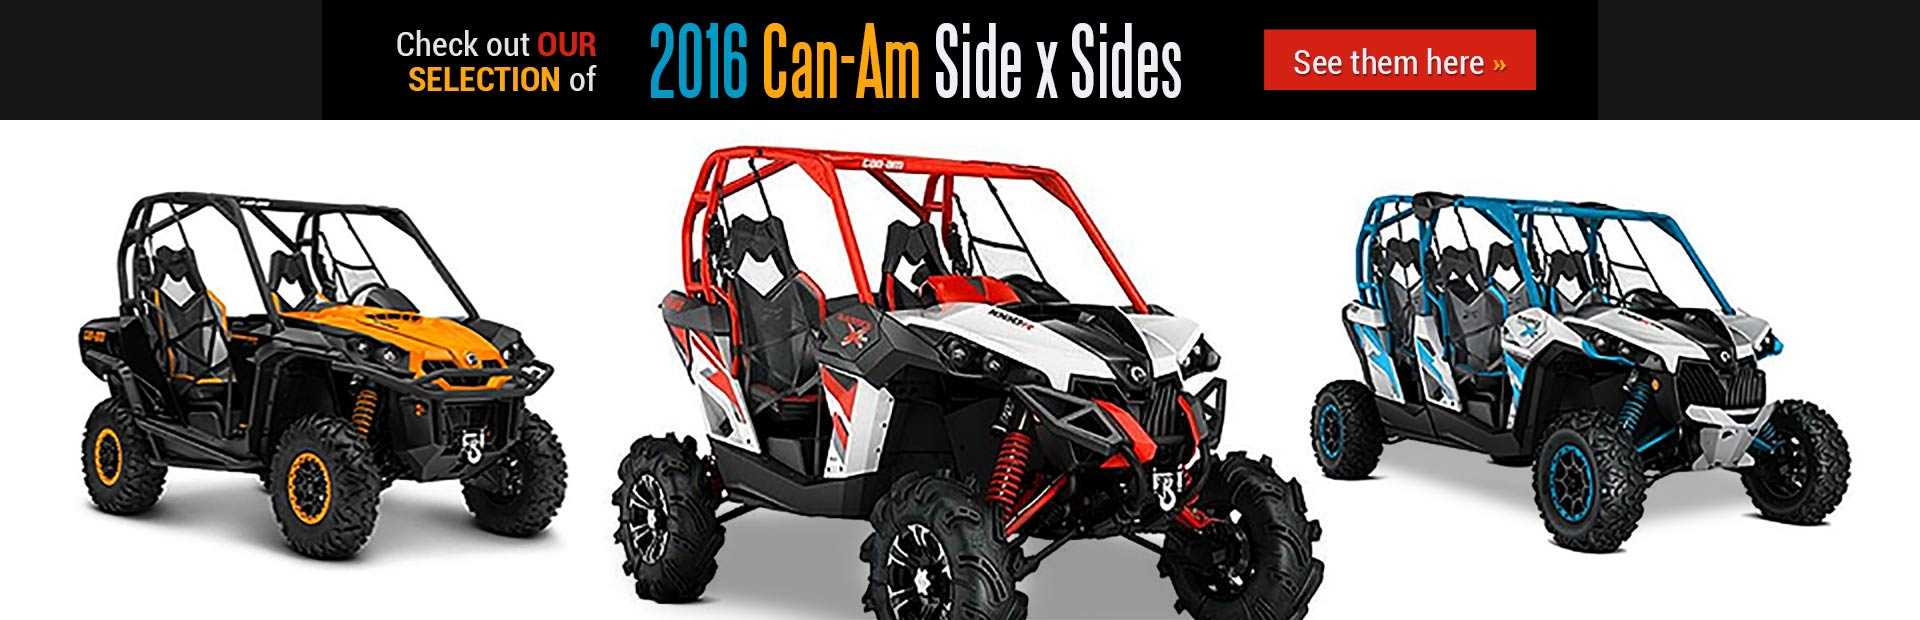 Check out our selection of 2016 Can-Am side x sides!